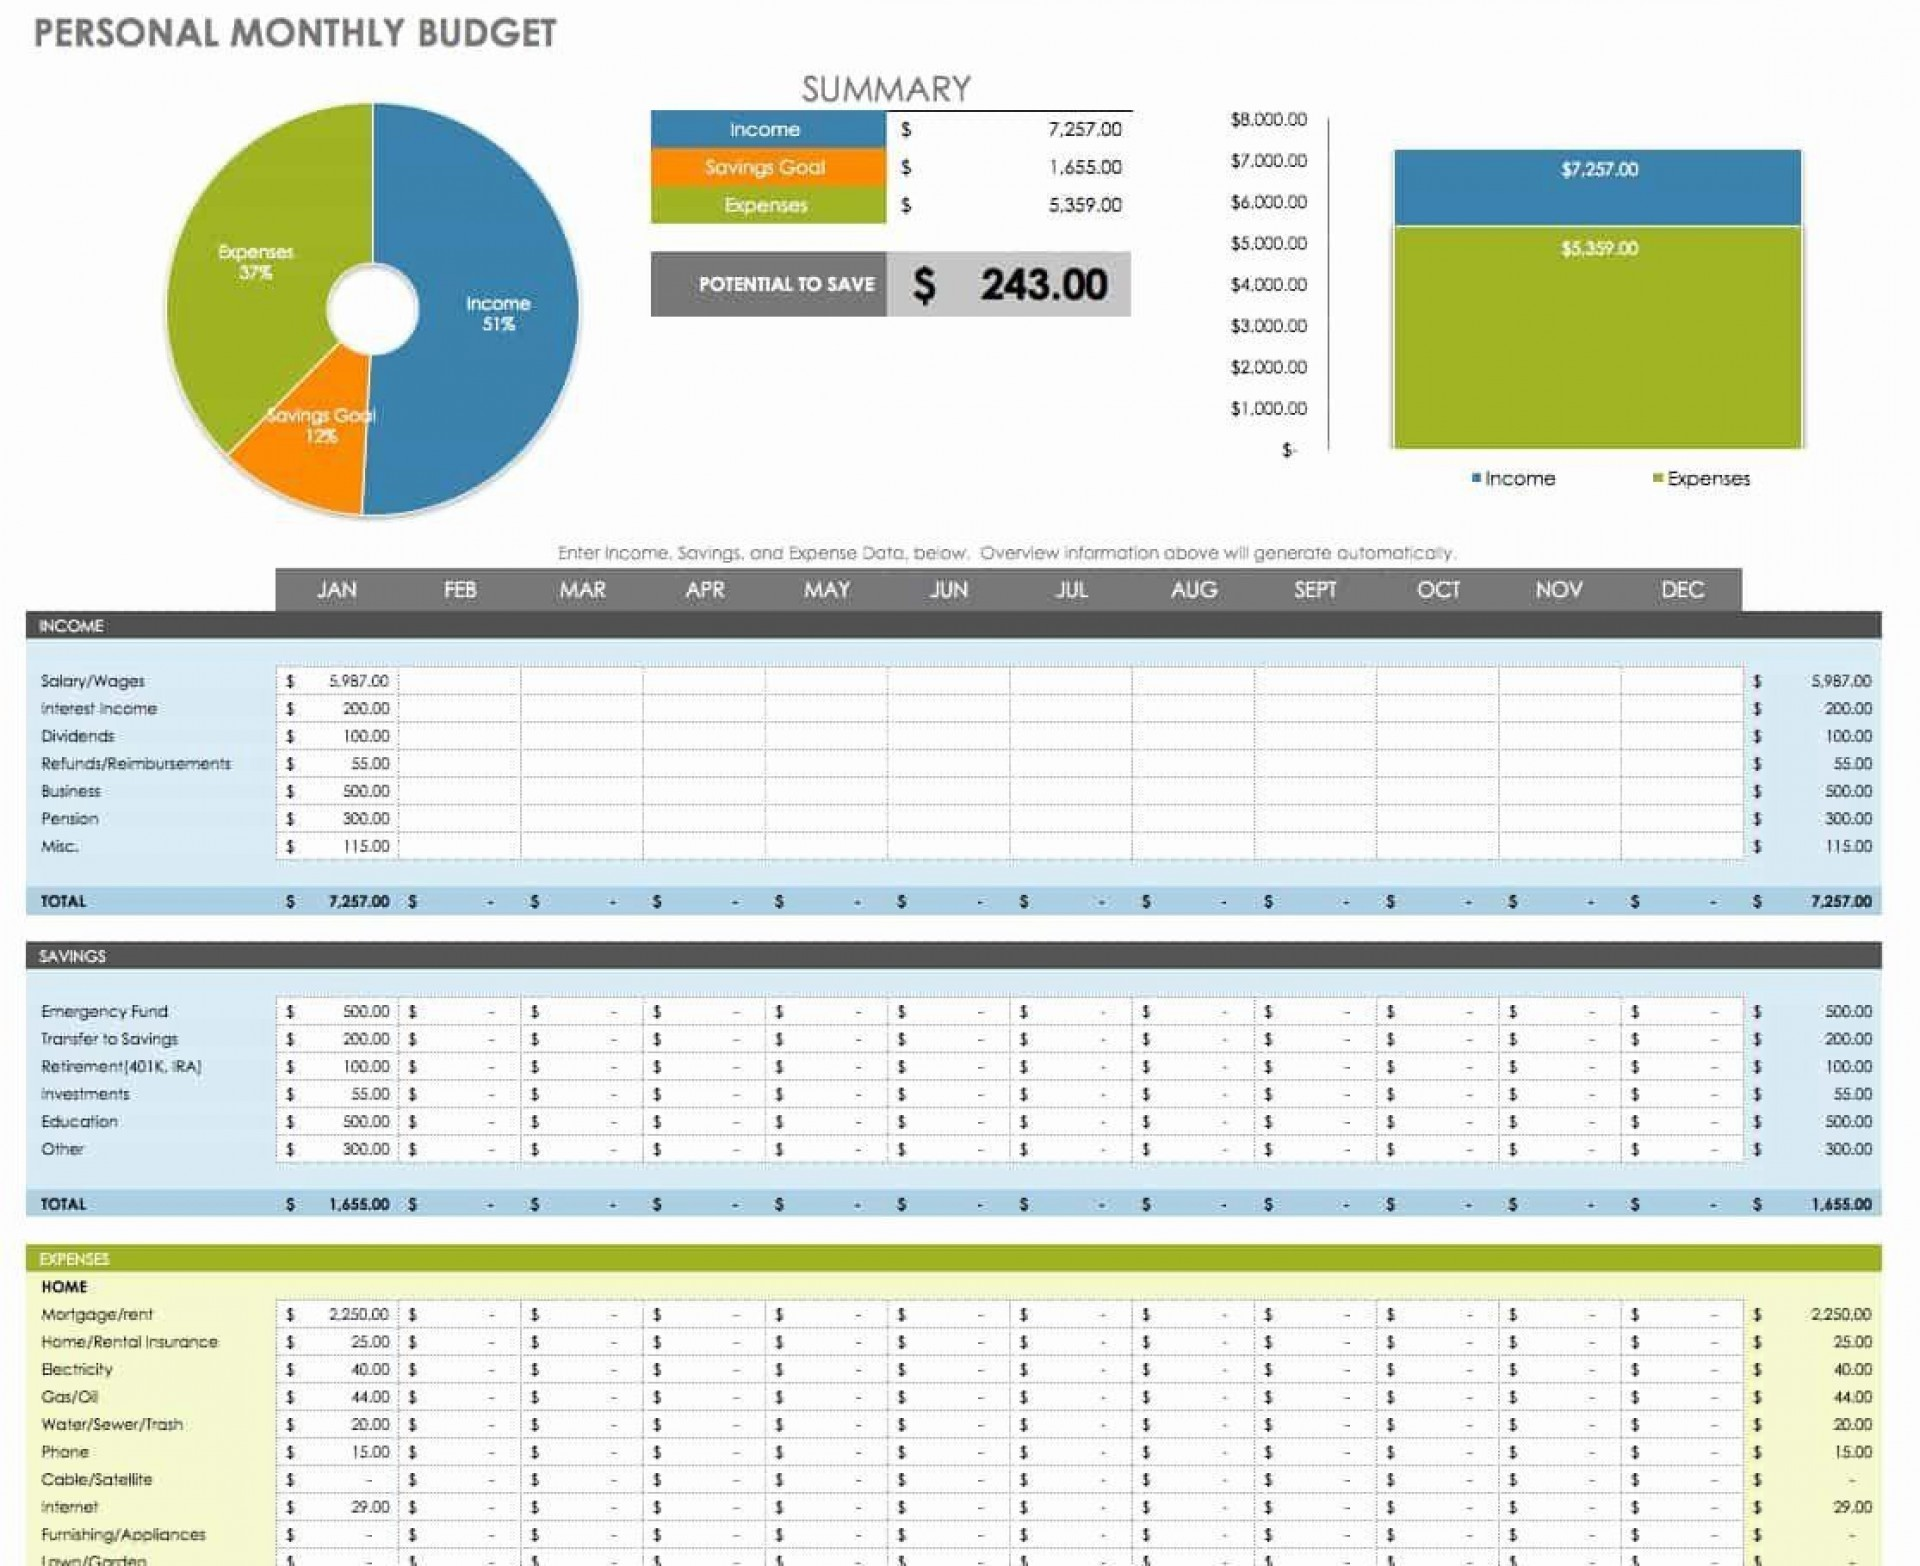 002 Dreaded Budgeting Template In Excel High Resolution  Training Budget Free Download Project1920